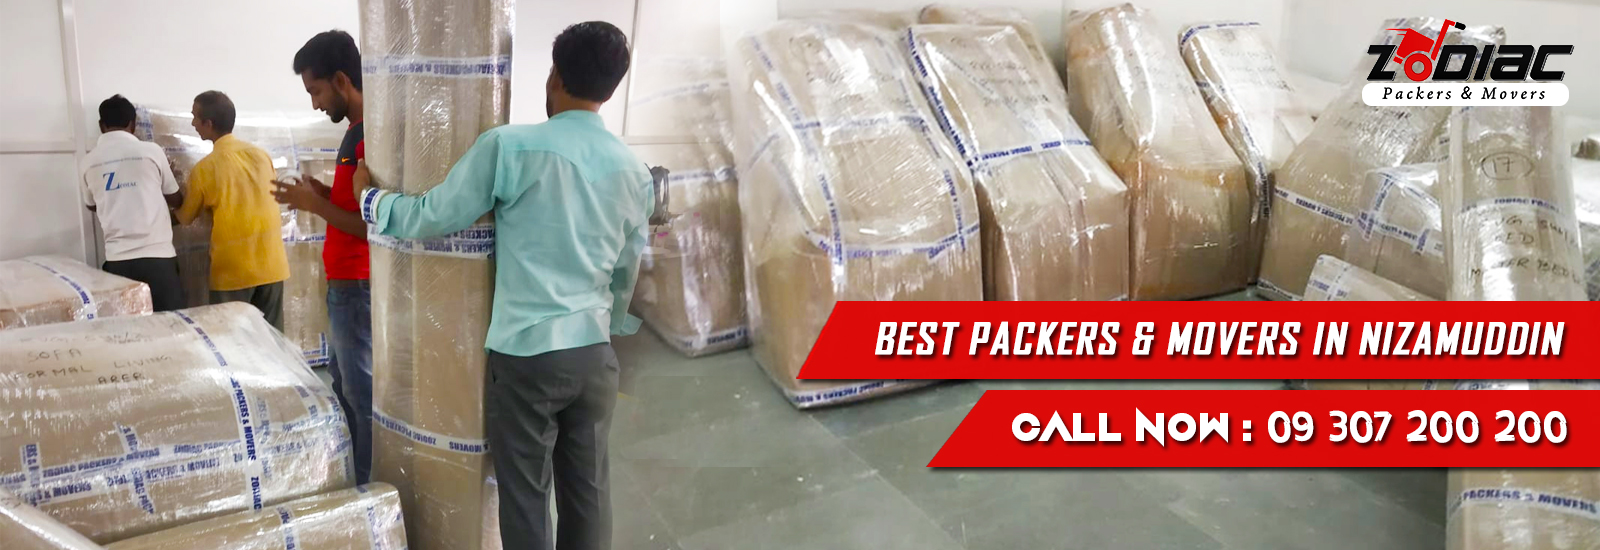 Packers and Movers in Nizamuddin